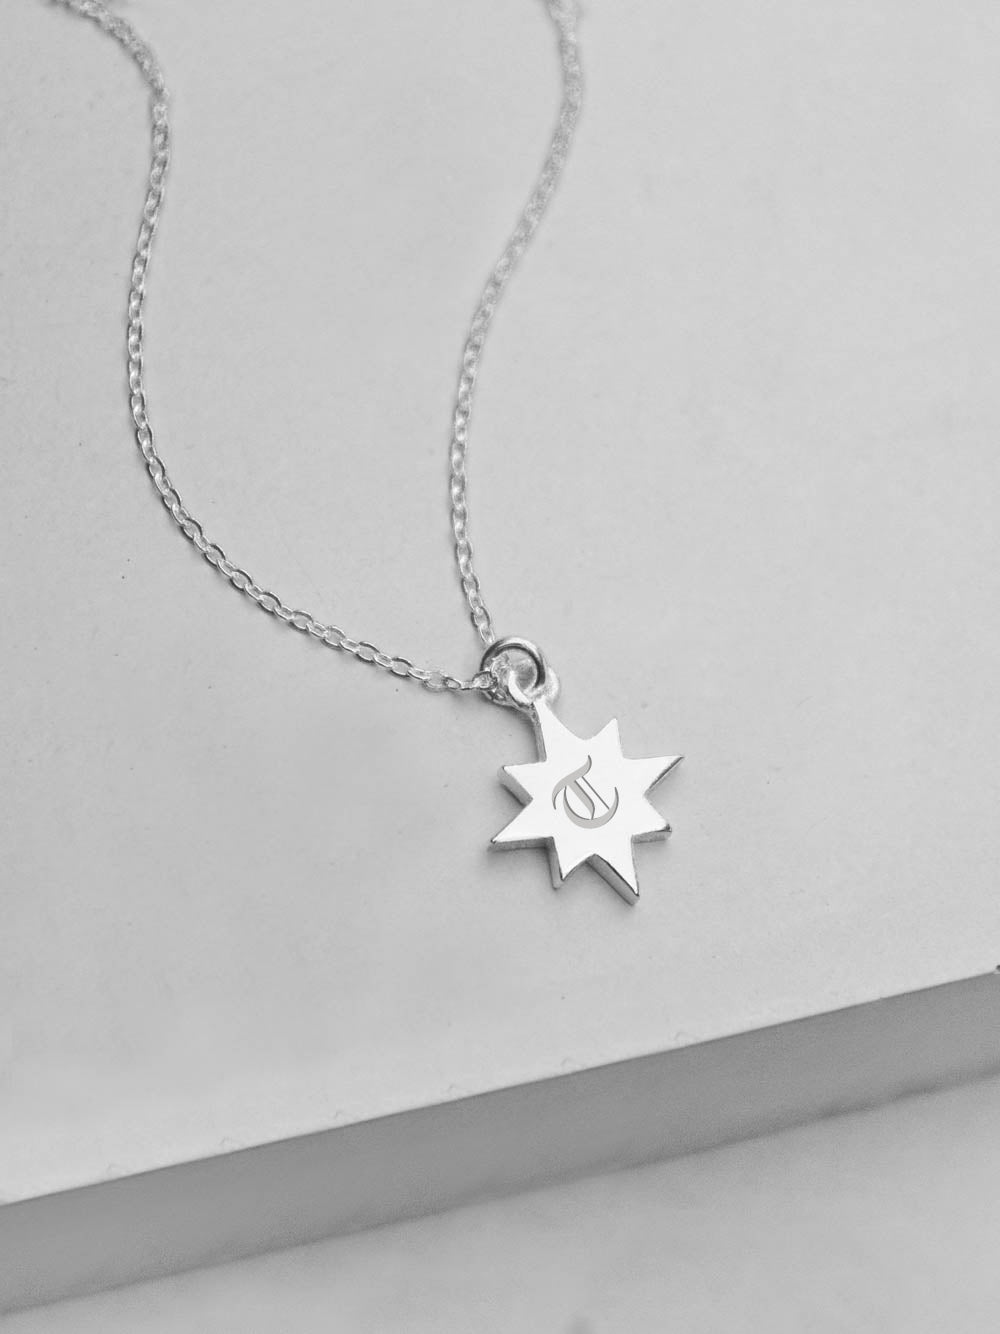 Engraved Mini Star Silver Necklace by The Faint Hearted Jewelry